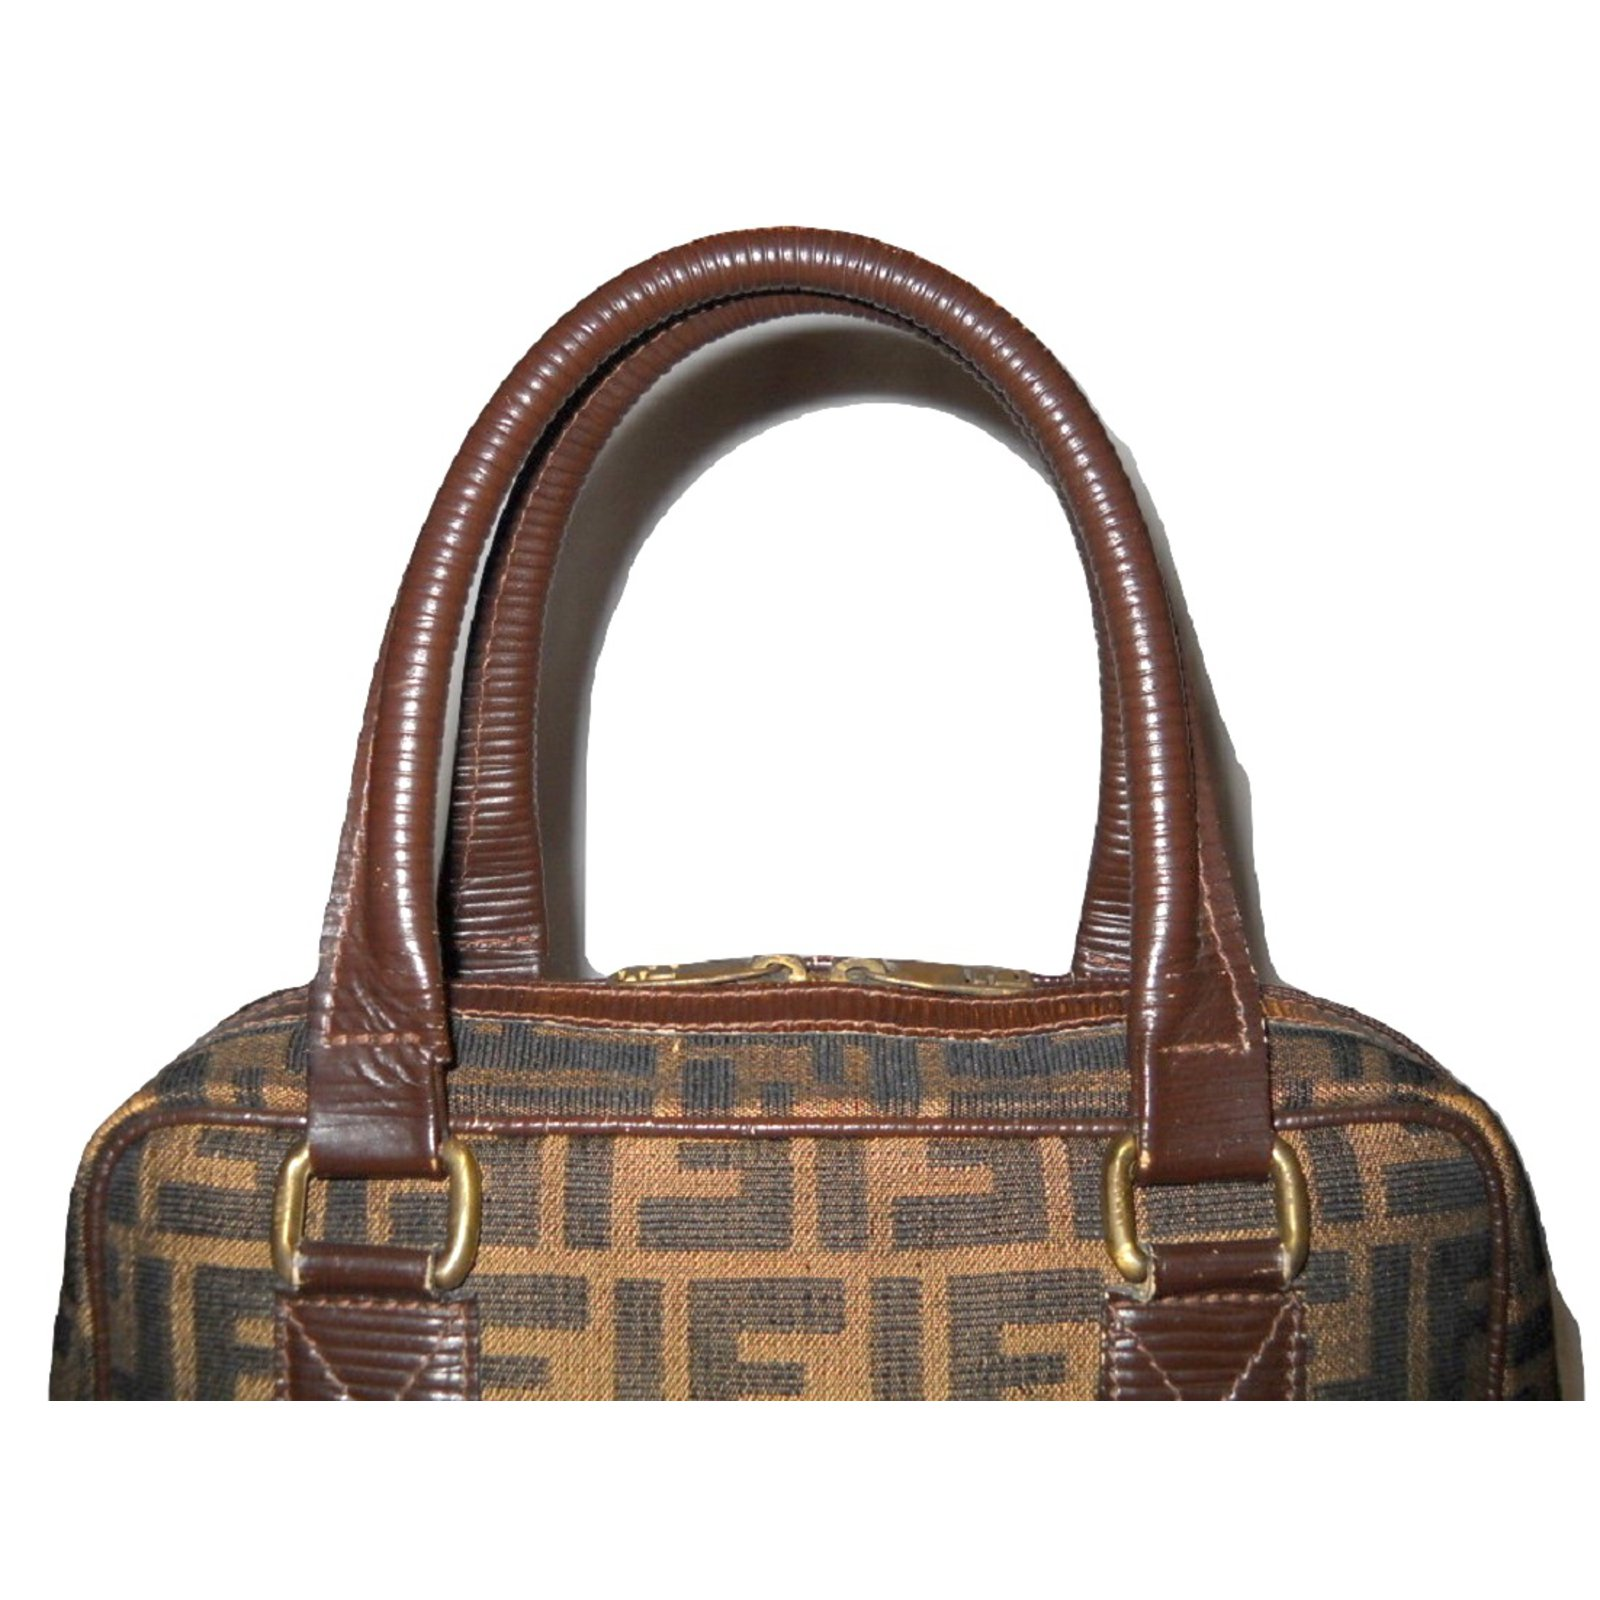 c021ebbc3a5e Fendi Vintage handbag Zucca brown Handbags Leather